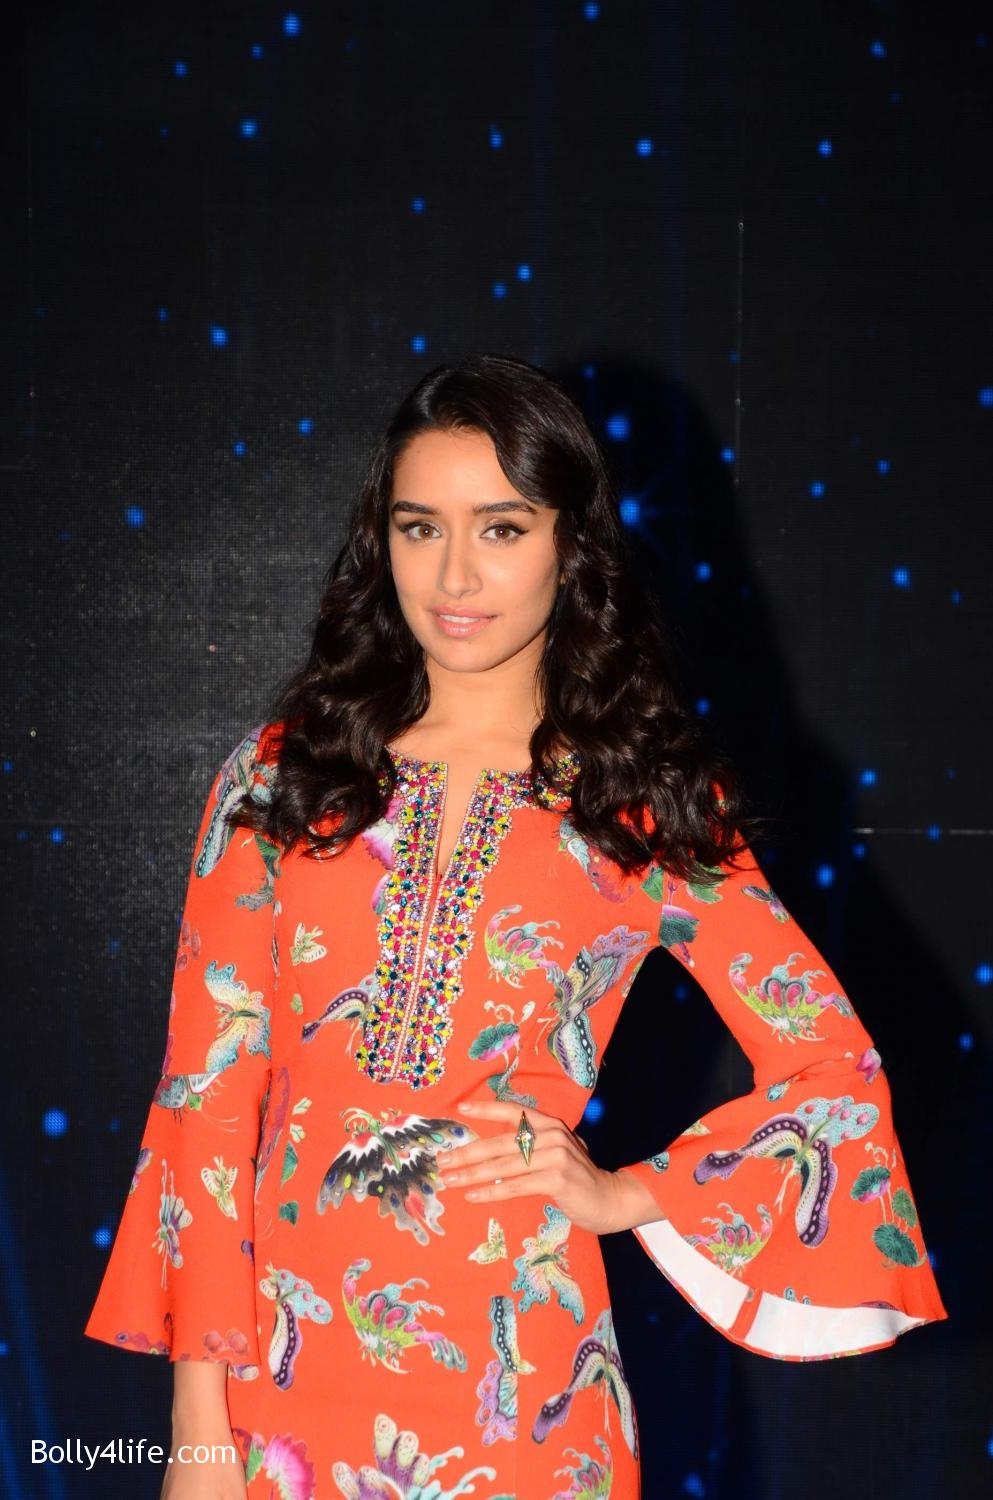 Shraddha-Kapoor-and-Aditya-Roy-Kapur-visit-on-the-set-of-Indian-Idol-Season-9-5.jpg